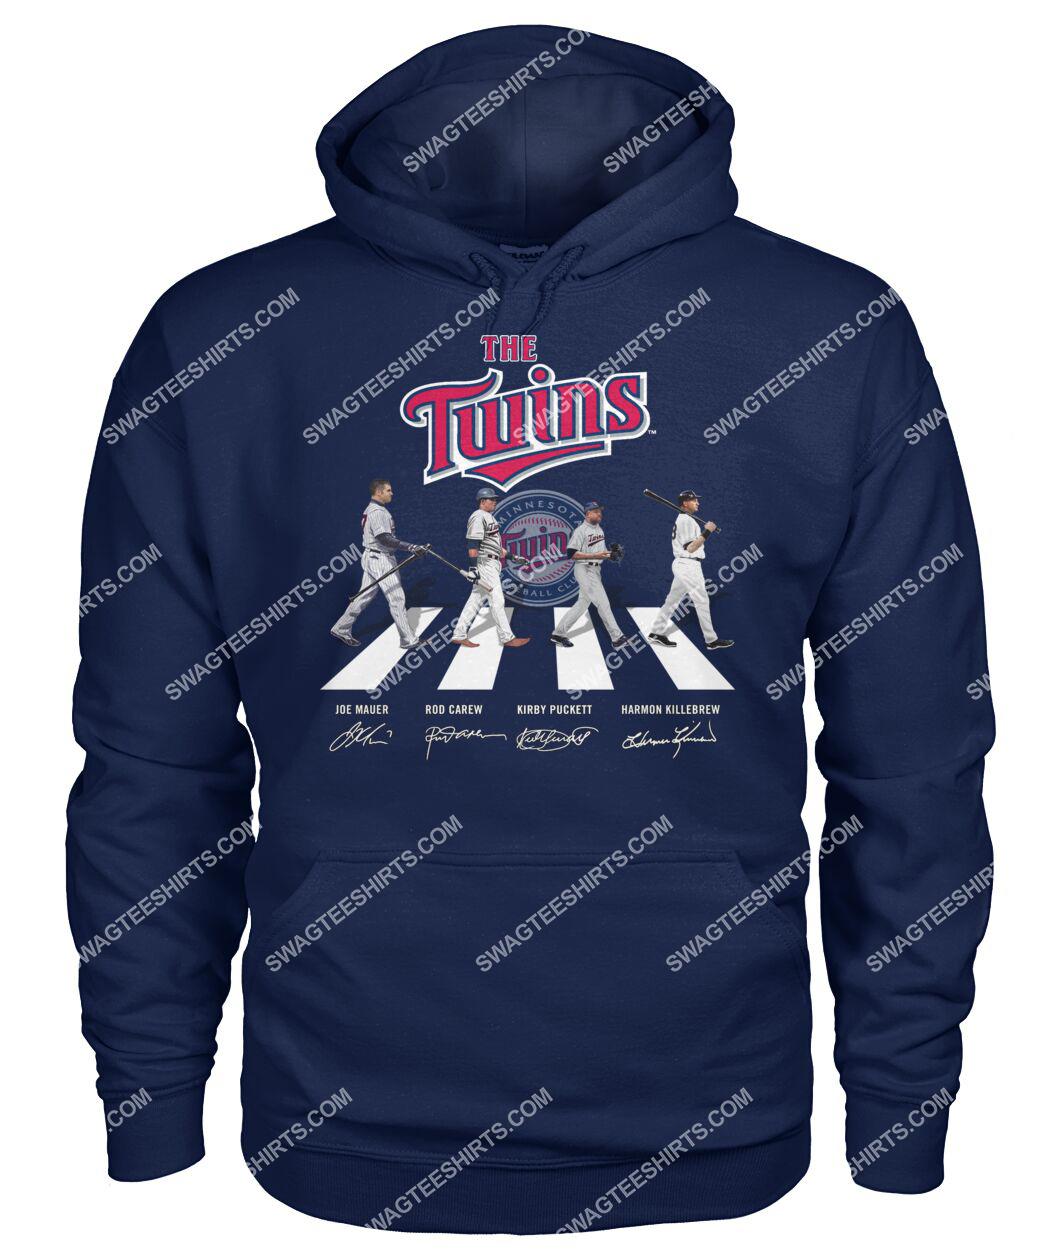 abbey road the minnesota twins signatures hoodie 1